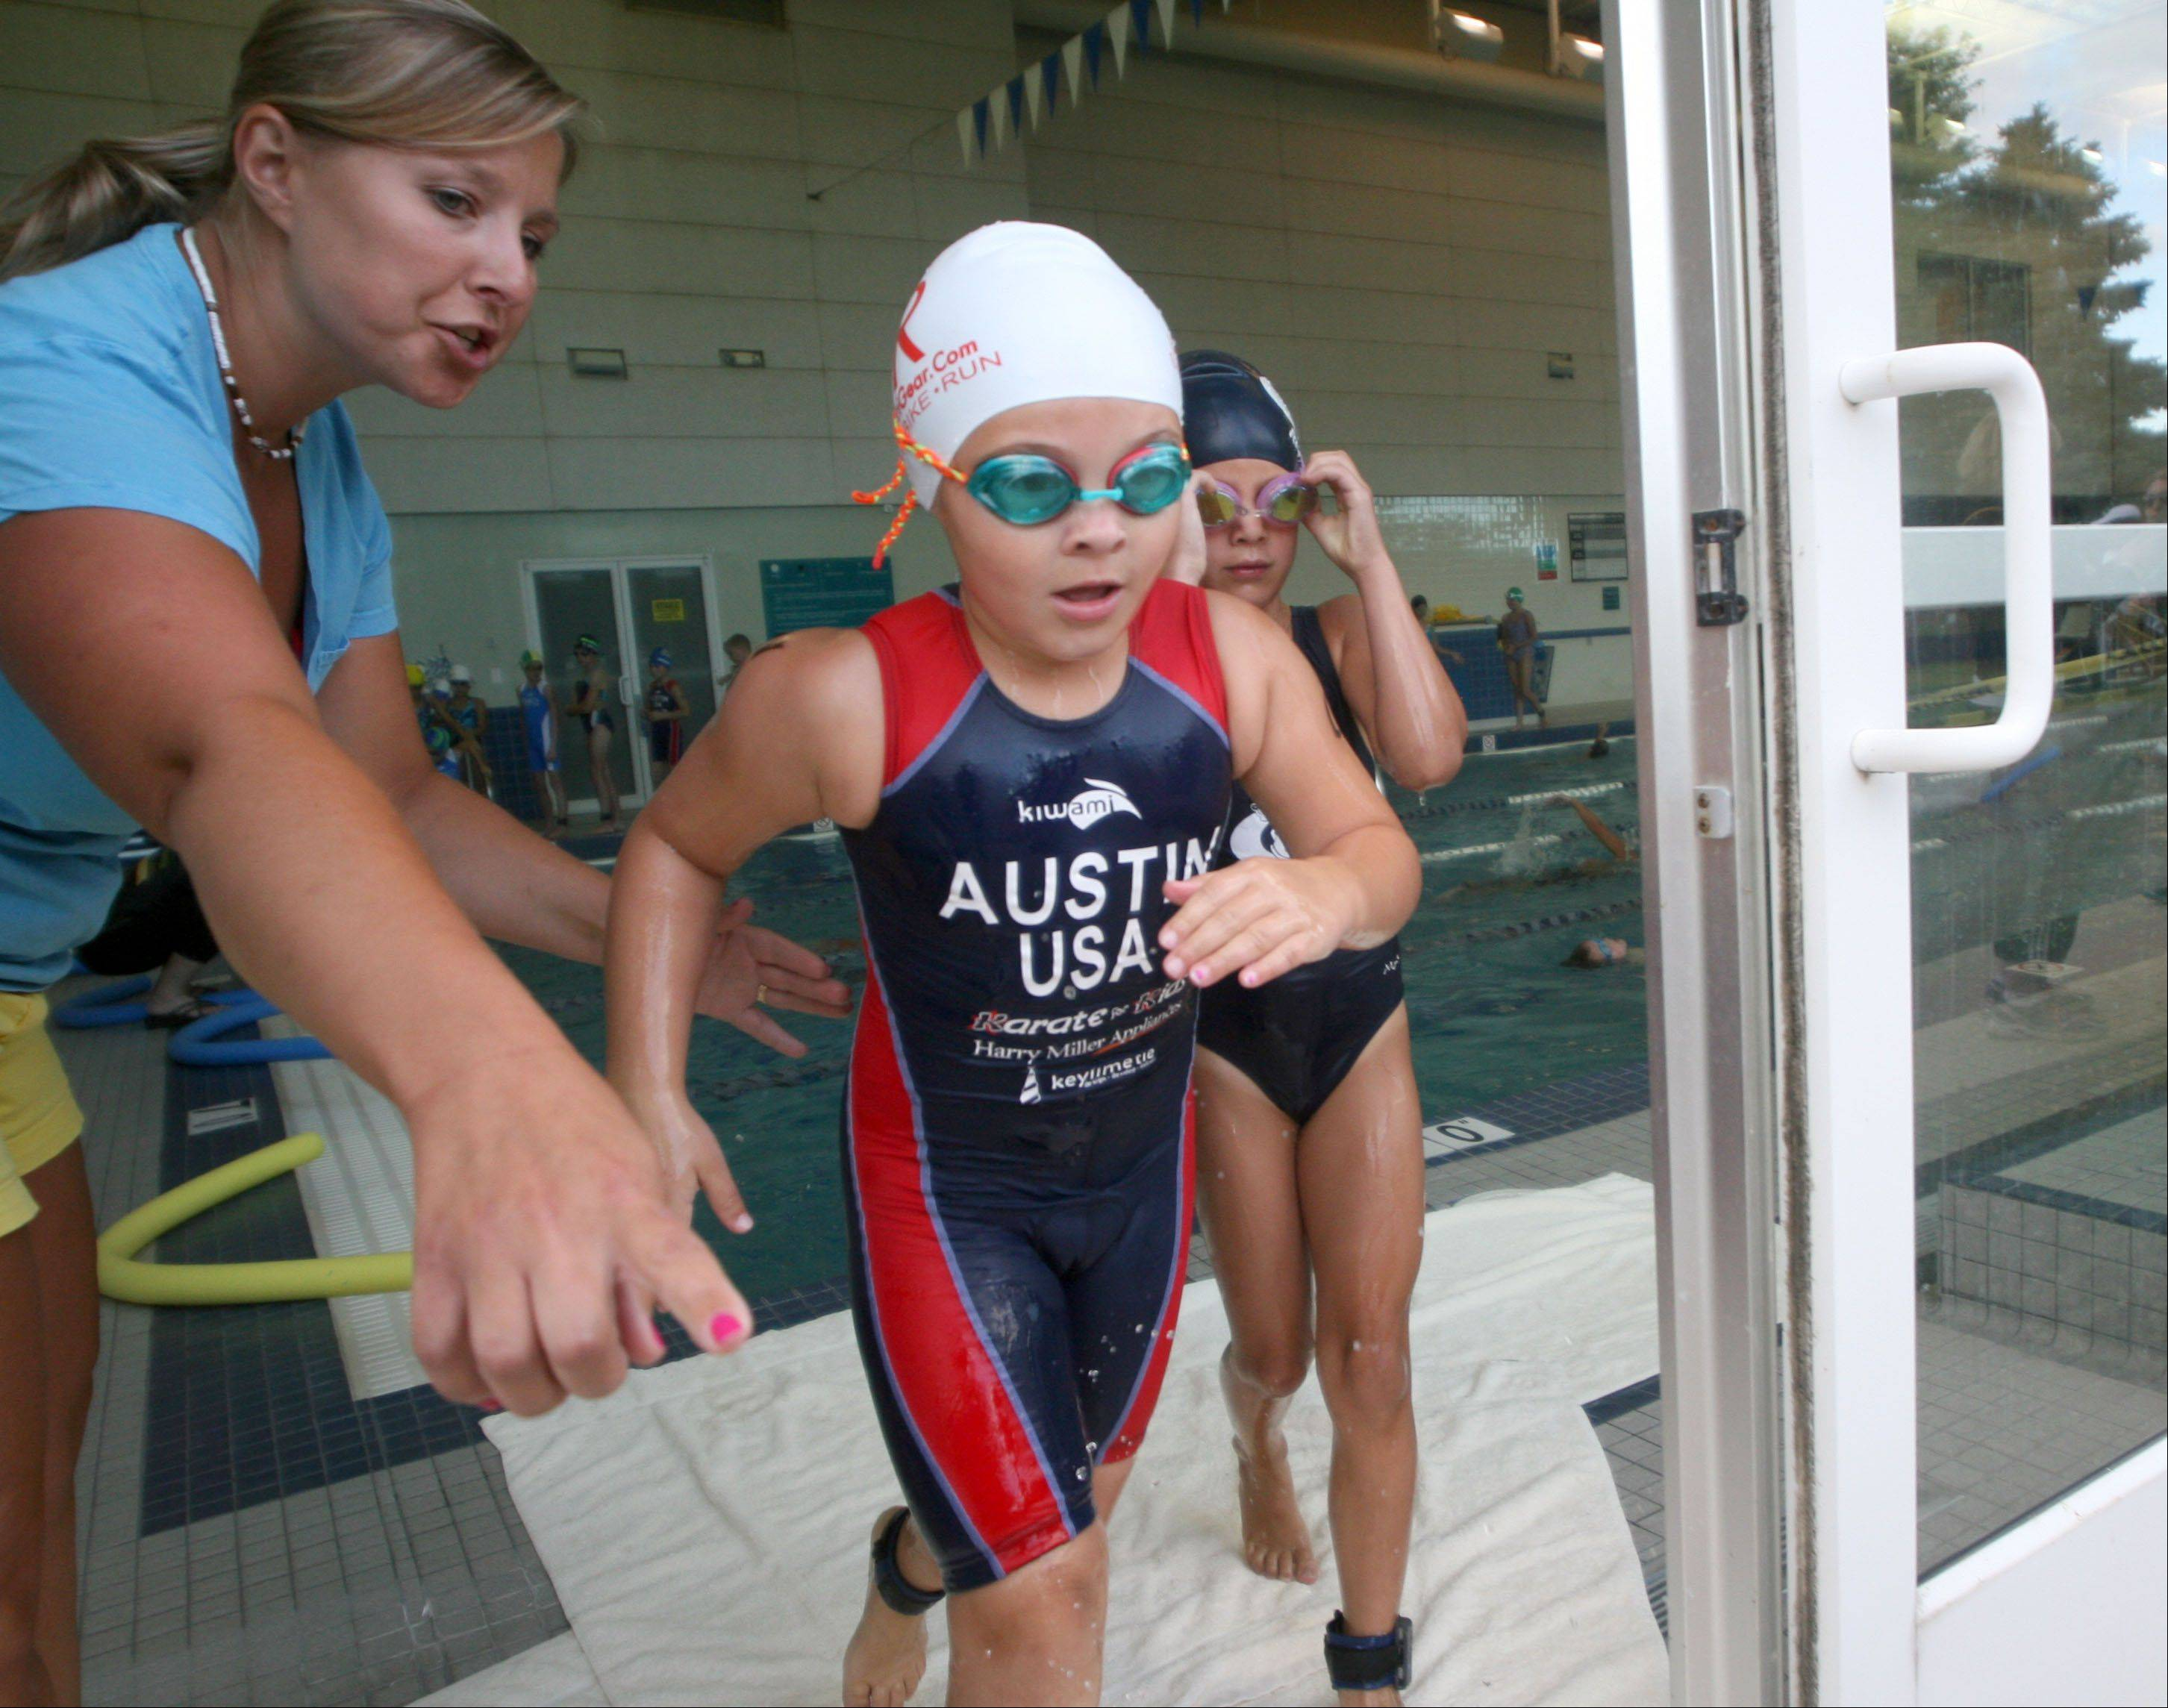 Cadence Fitness and Health Center employee Jennifer Parrilli, left, guides athletes during the Juniors event of the MMTT Splash and Dash race at Cadence Fitness and Health Center in Geneva Wednesday night.